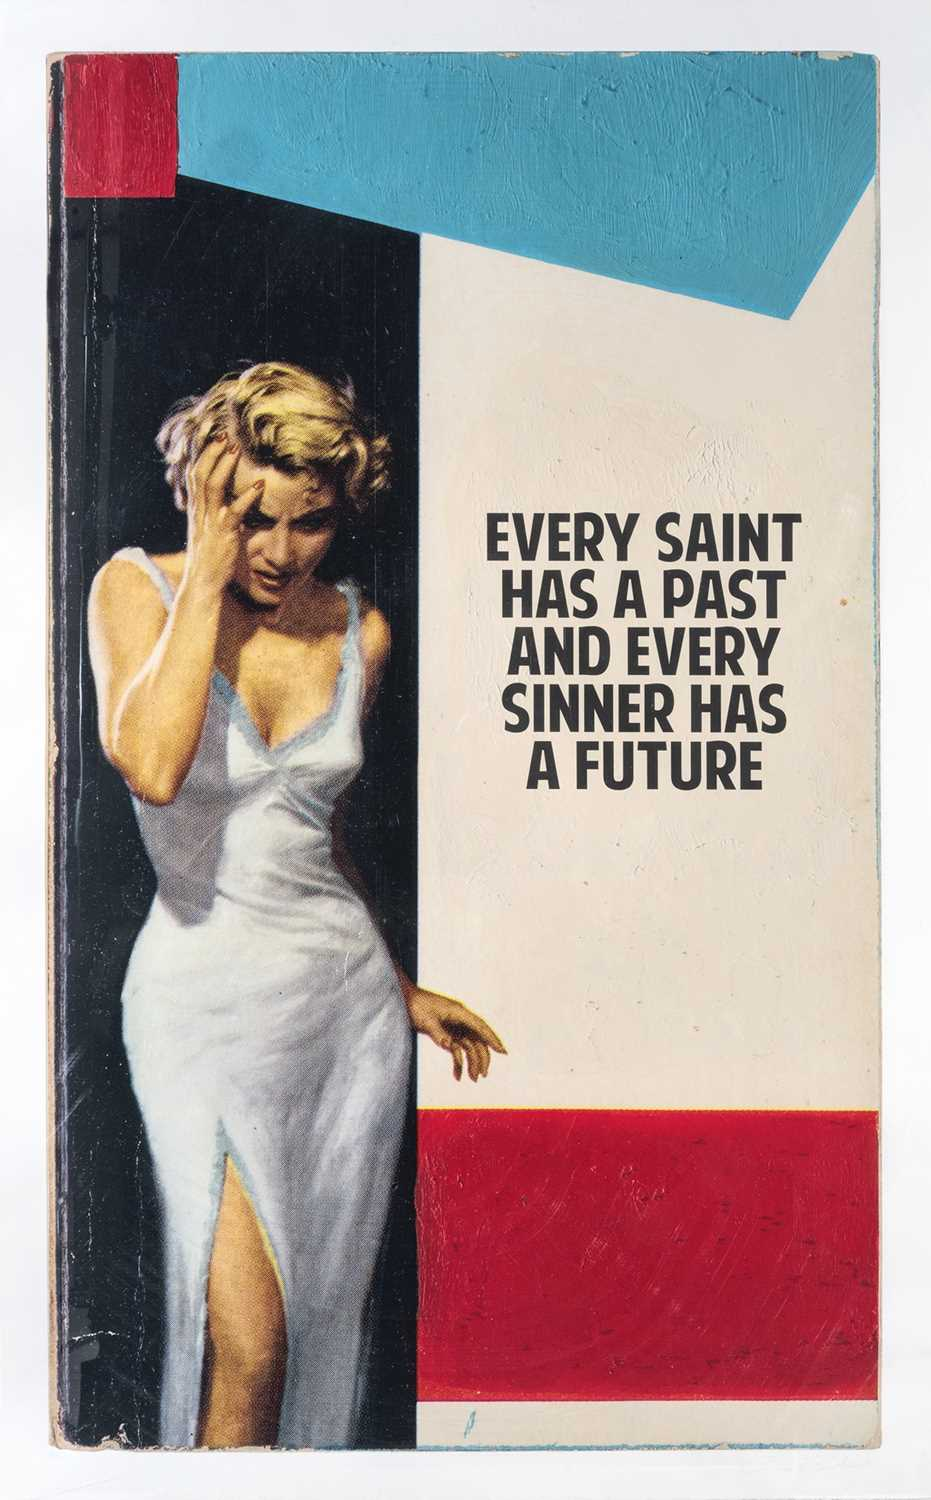 Lot 10 - Connor Brothers (British Duo), 'Every Saint Has A Past And Every Sinner Has A Future', 2017